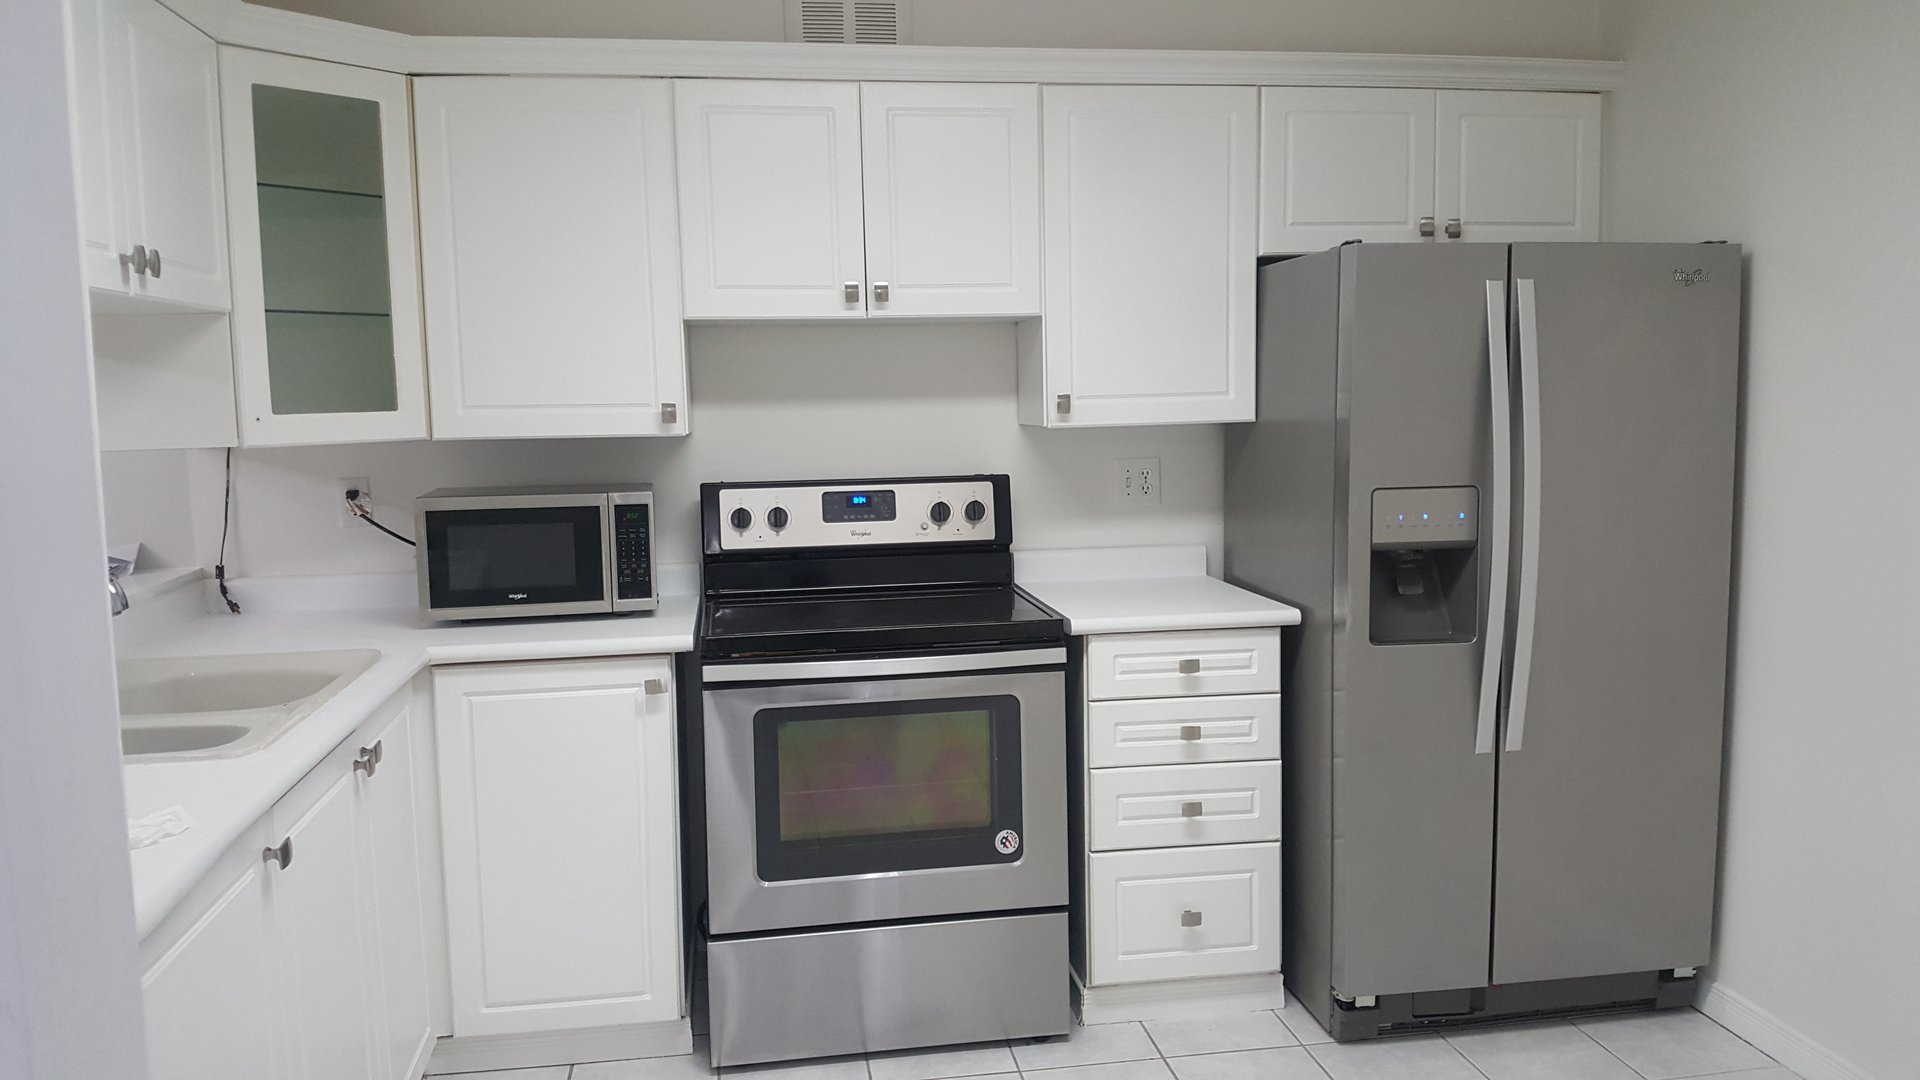 Condo for rent at 236 Albion Road, Etobicoke, ON. This is the kitchen with stainless steel and tile floor.